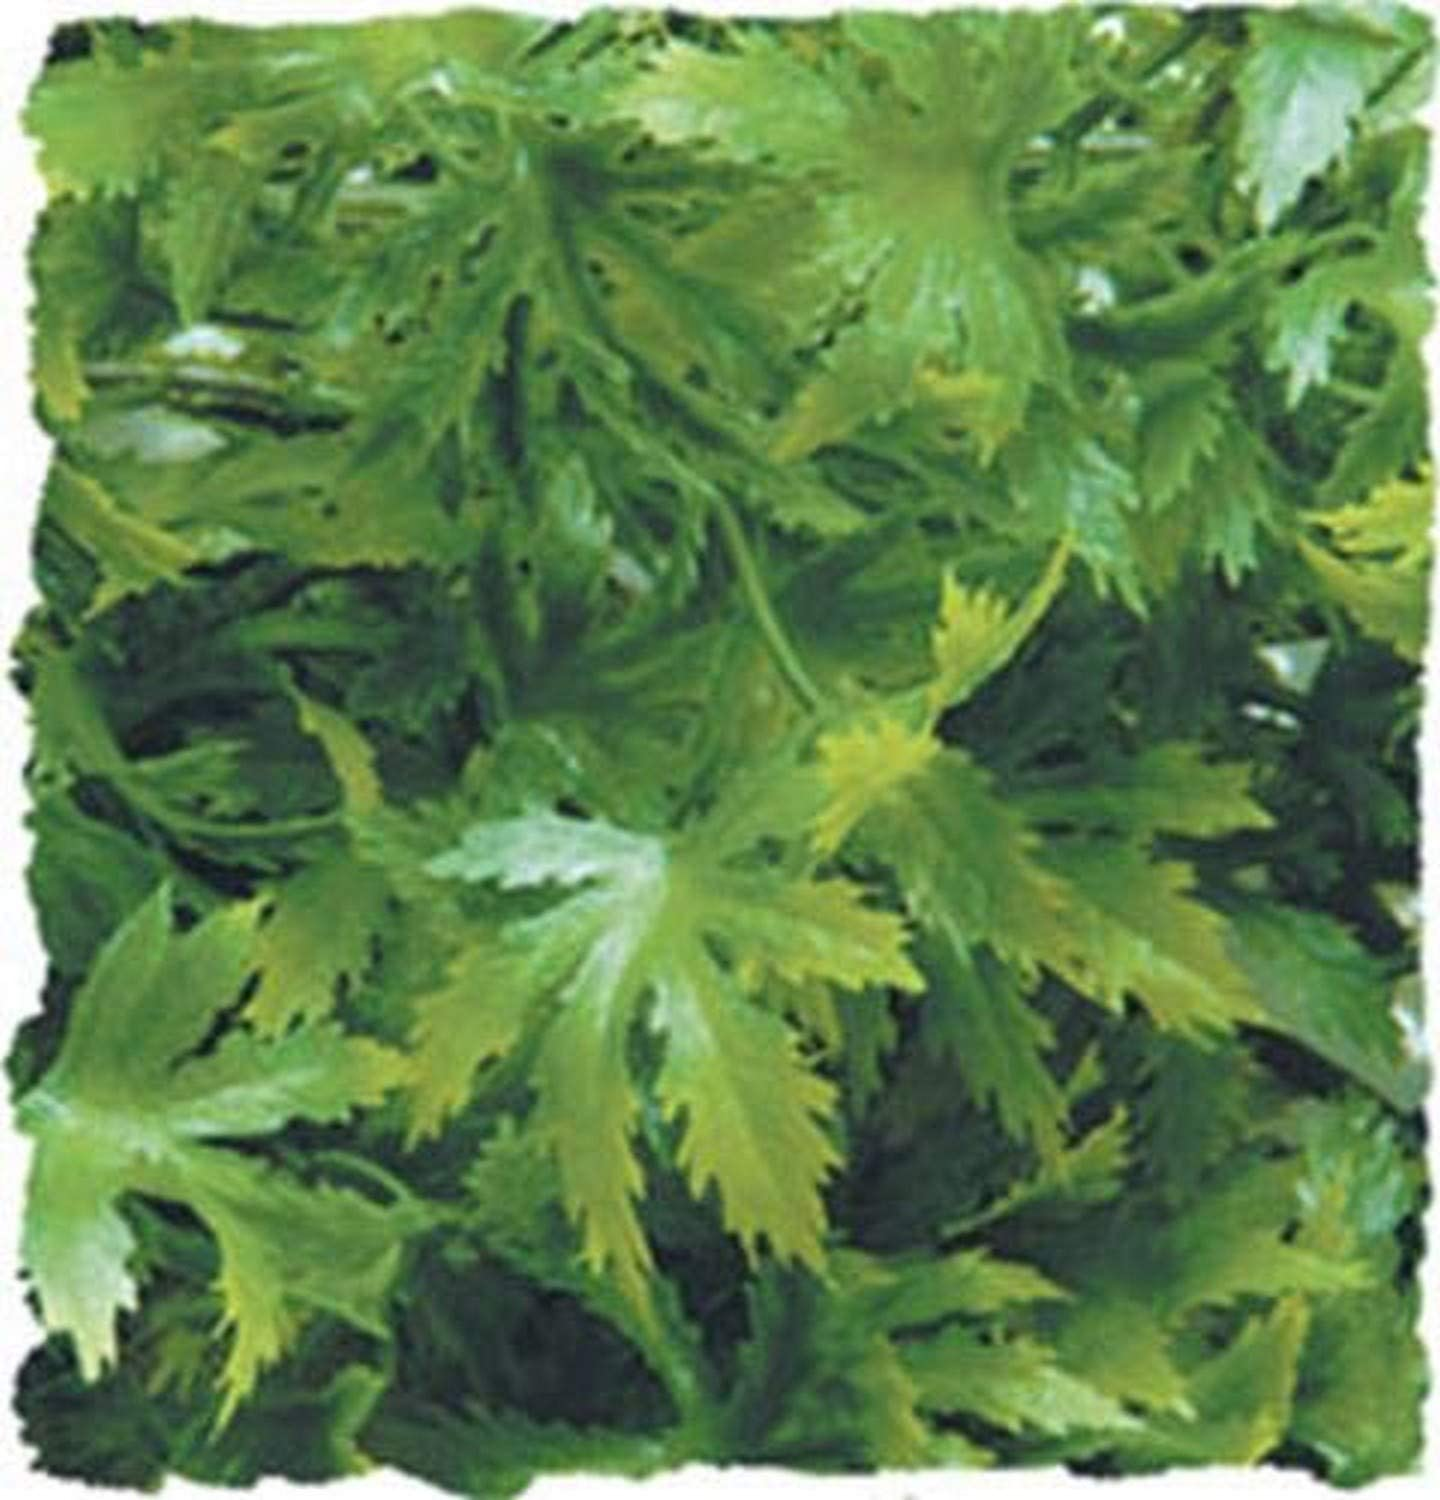 ZOO MED NATURAL BUSH CANNABIS SMALL DECORATION FREE SHIPPING TO THE USA